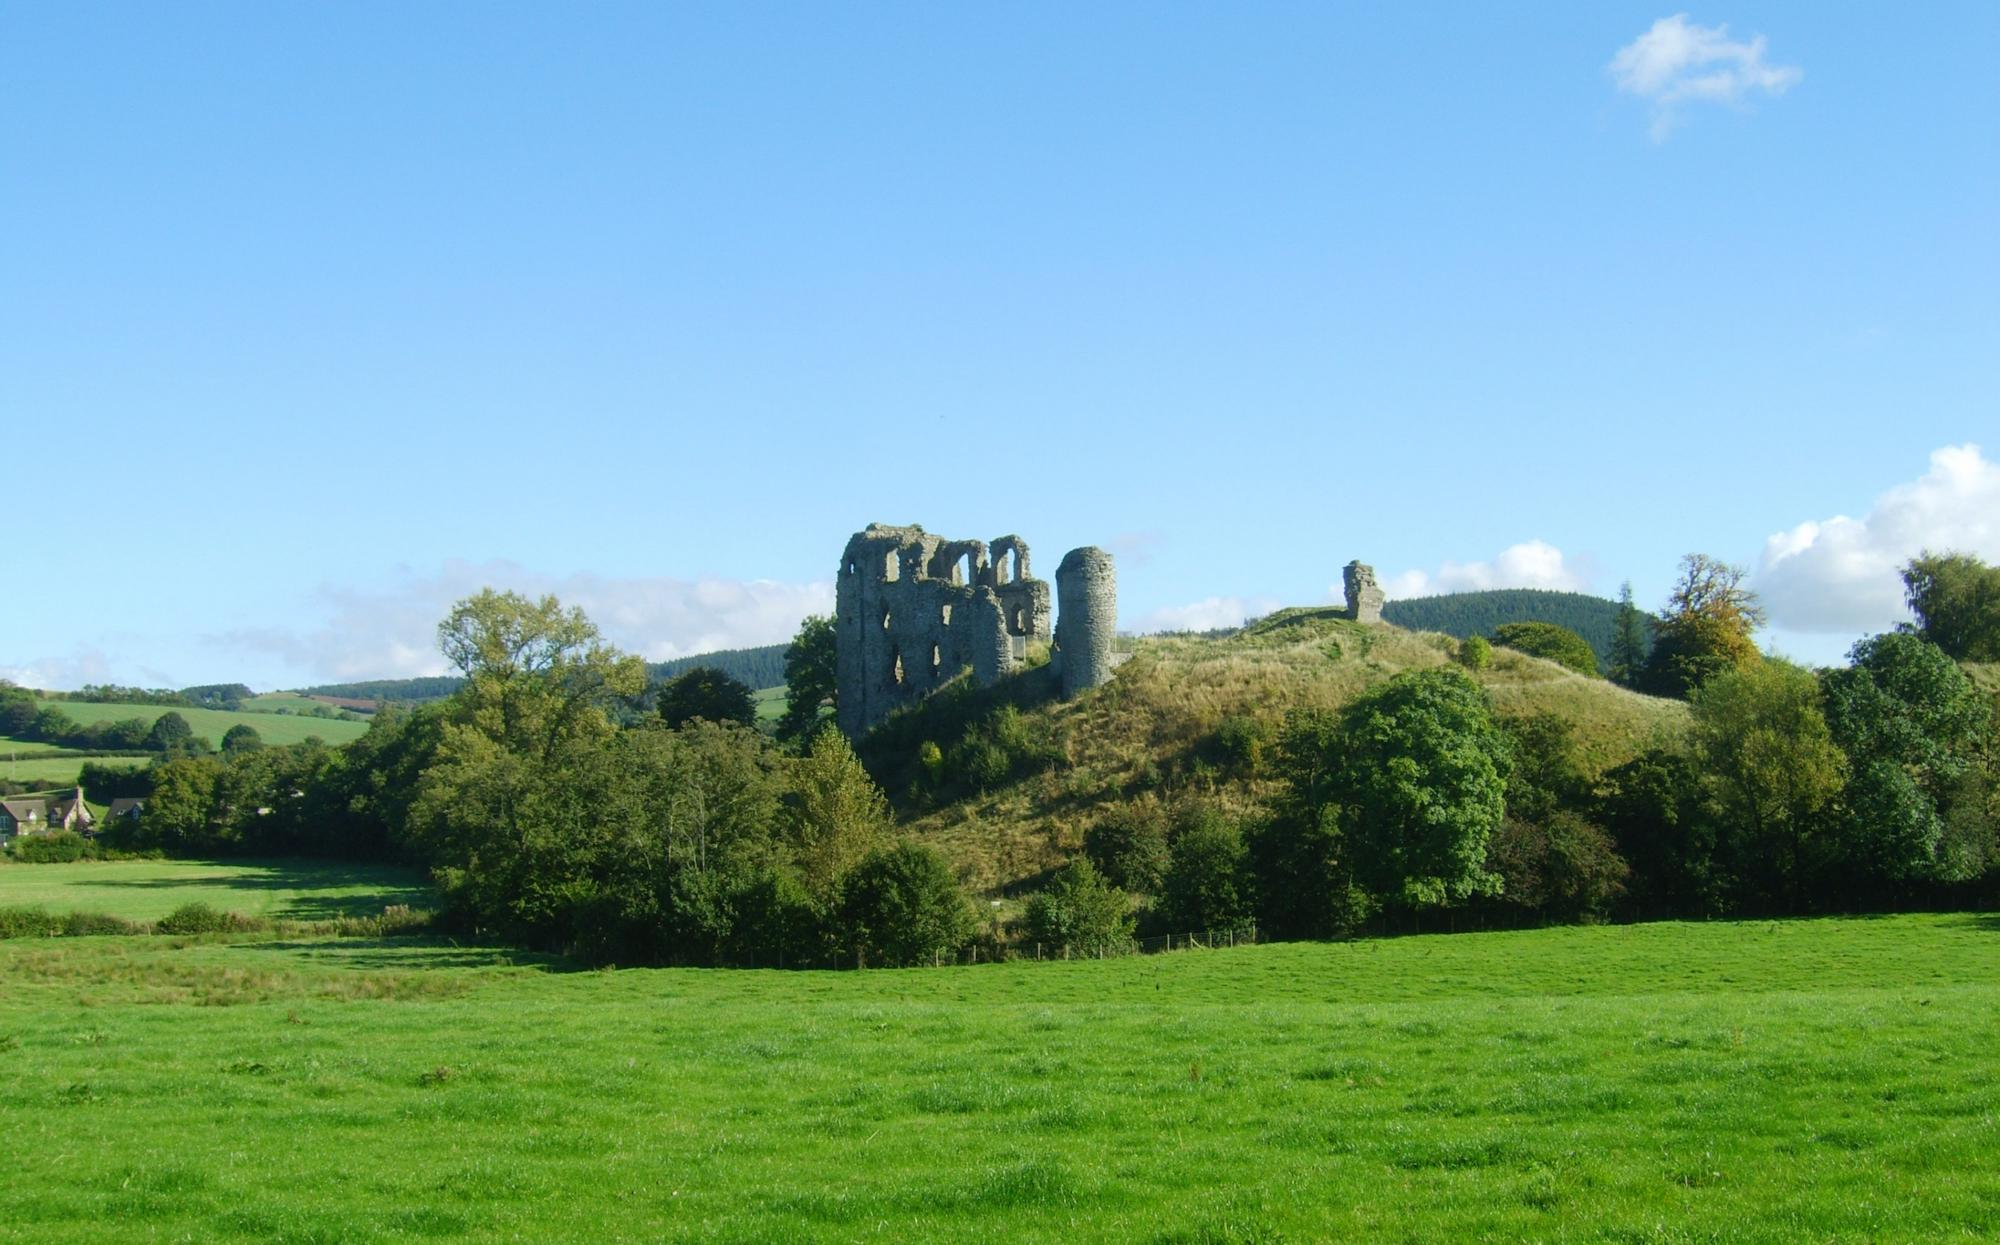 Campsites in Shropshire | Best Camping Sites in Shropshire